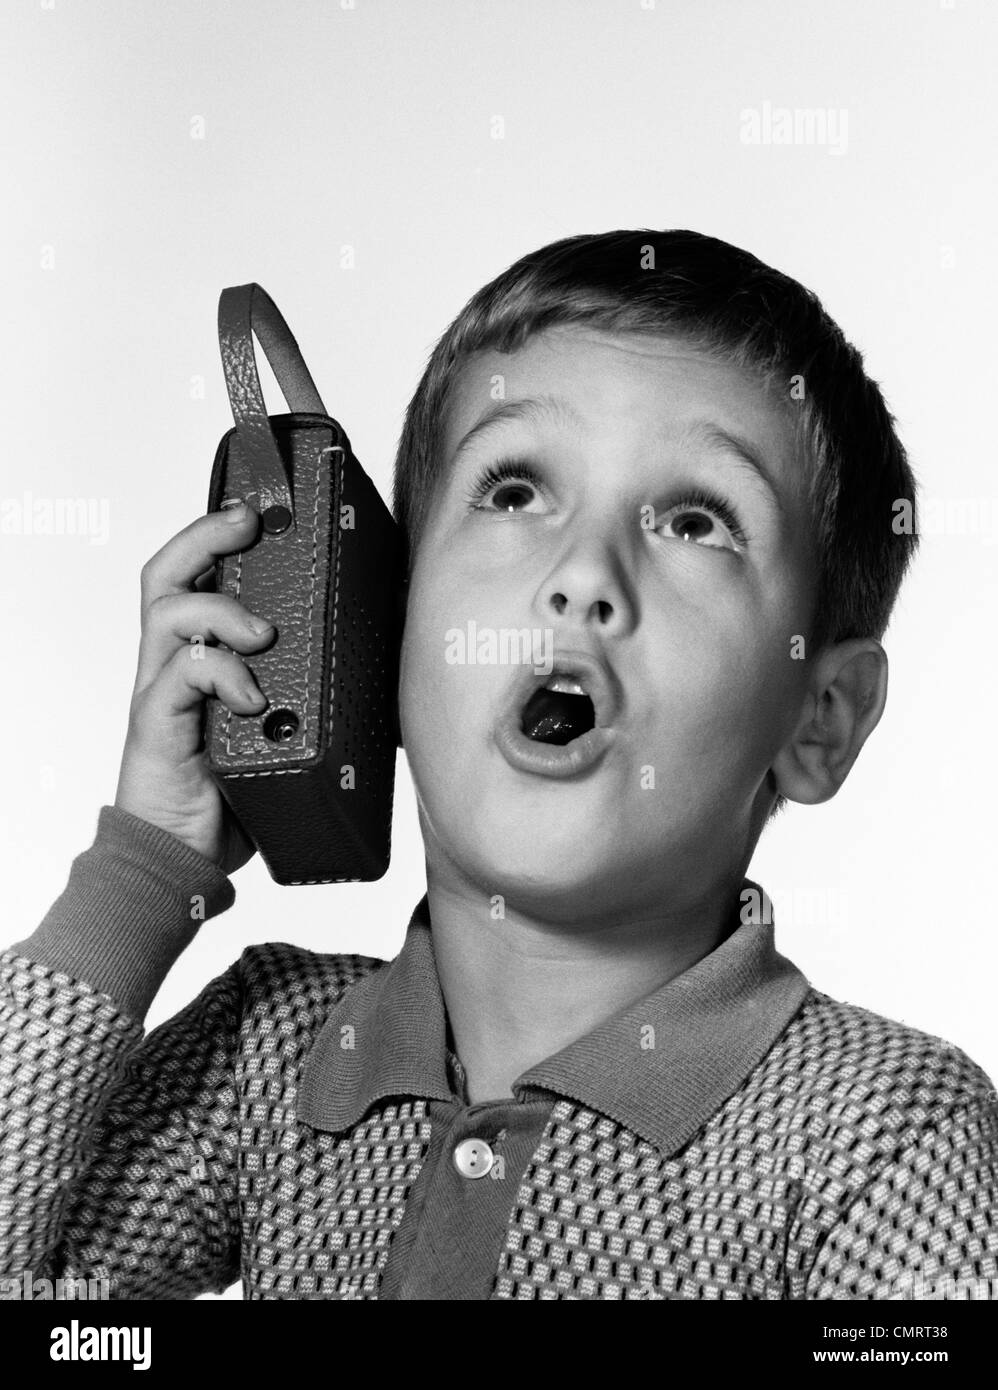 1960s BOY HOLDING TRANSISTOR RADIO UP TO HIS EAR WHILE HE SINGS ALONG - Stock Image